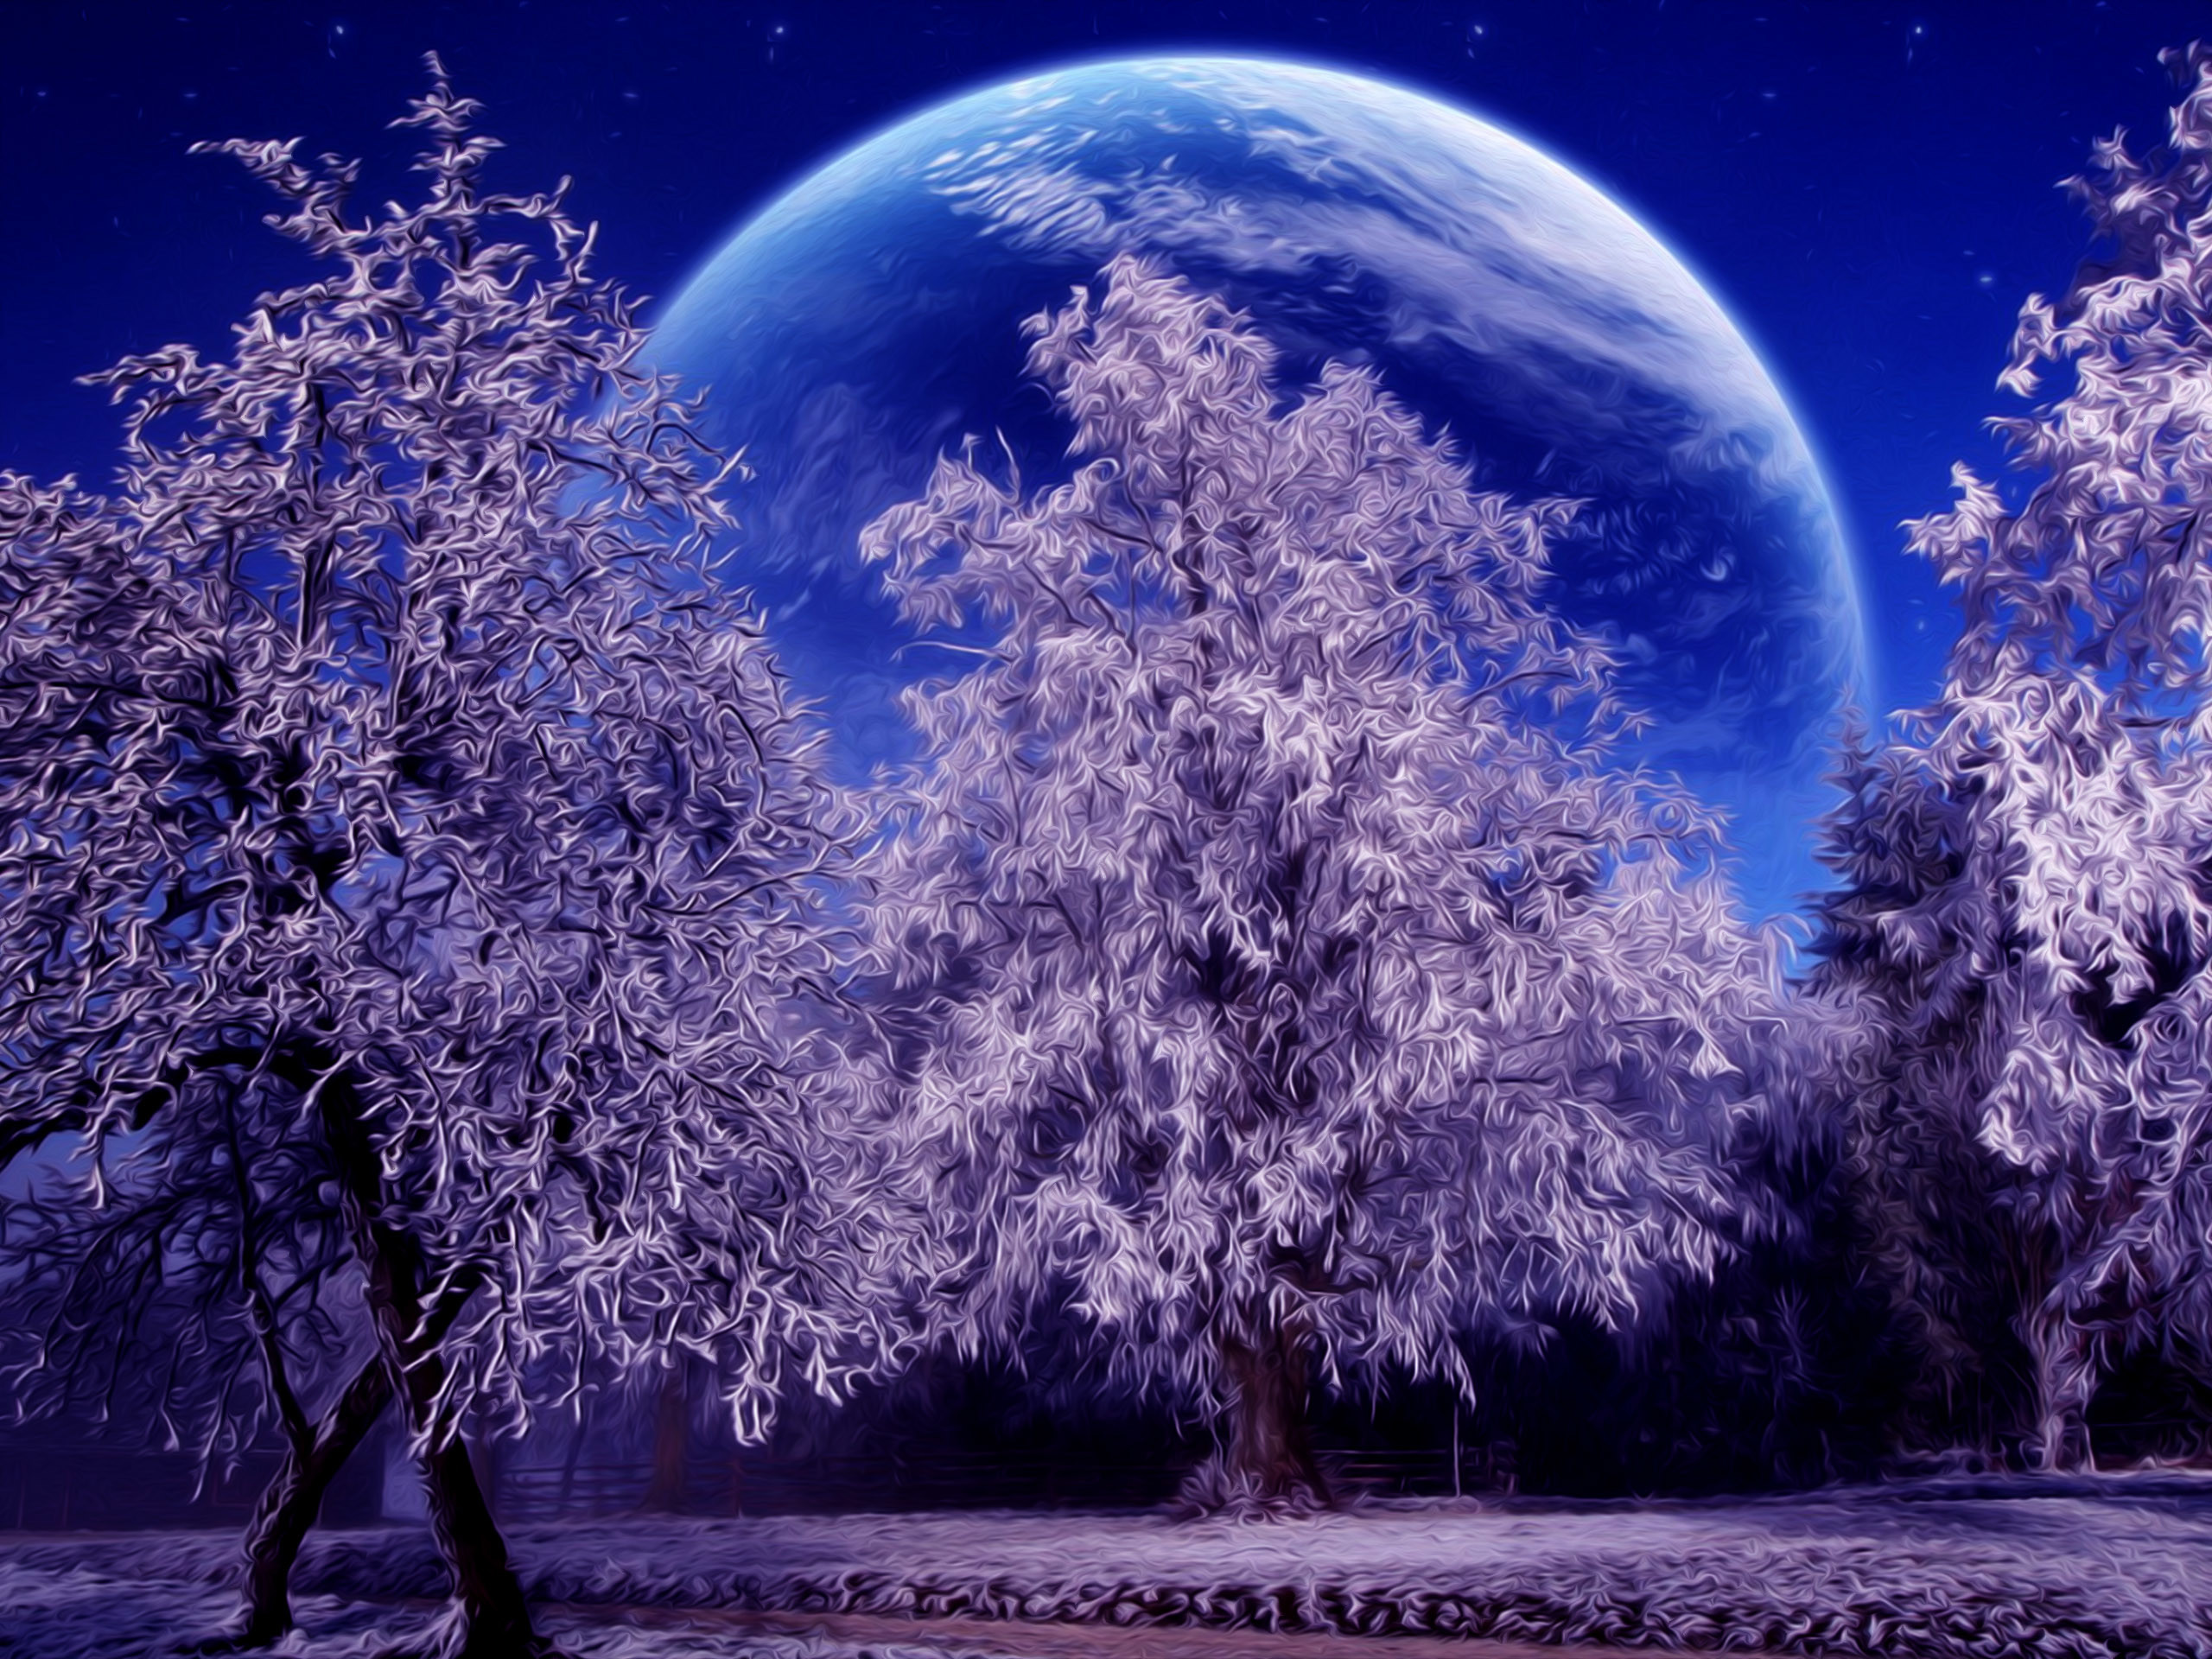 Winter Snow Scenes Wallpaper